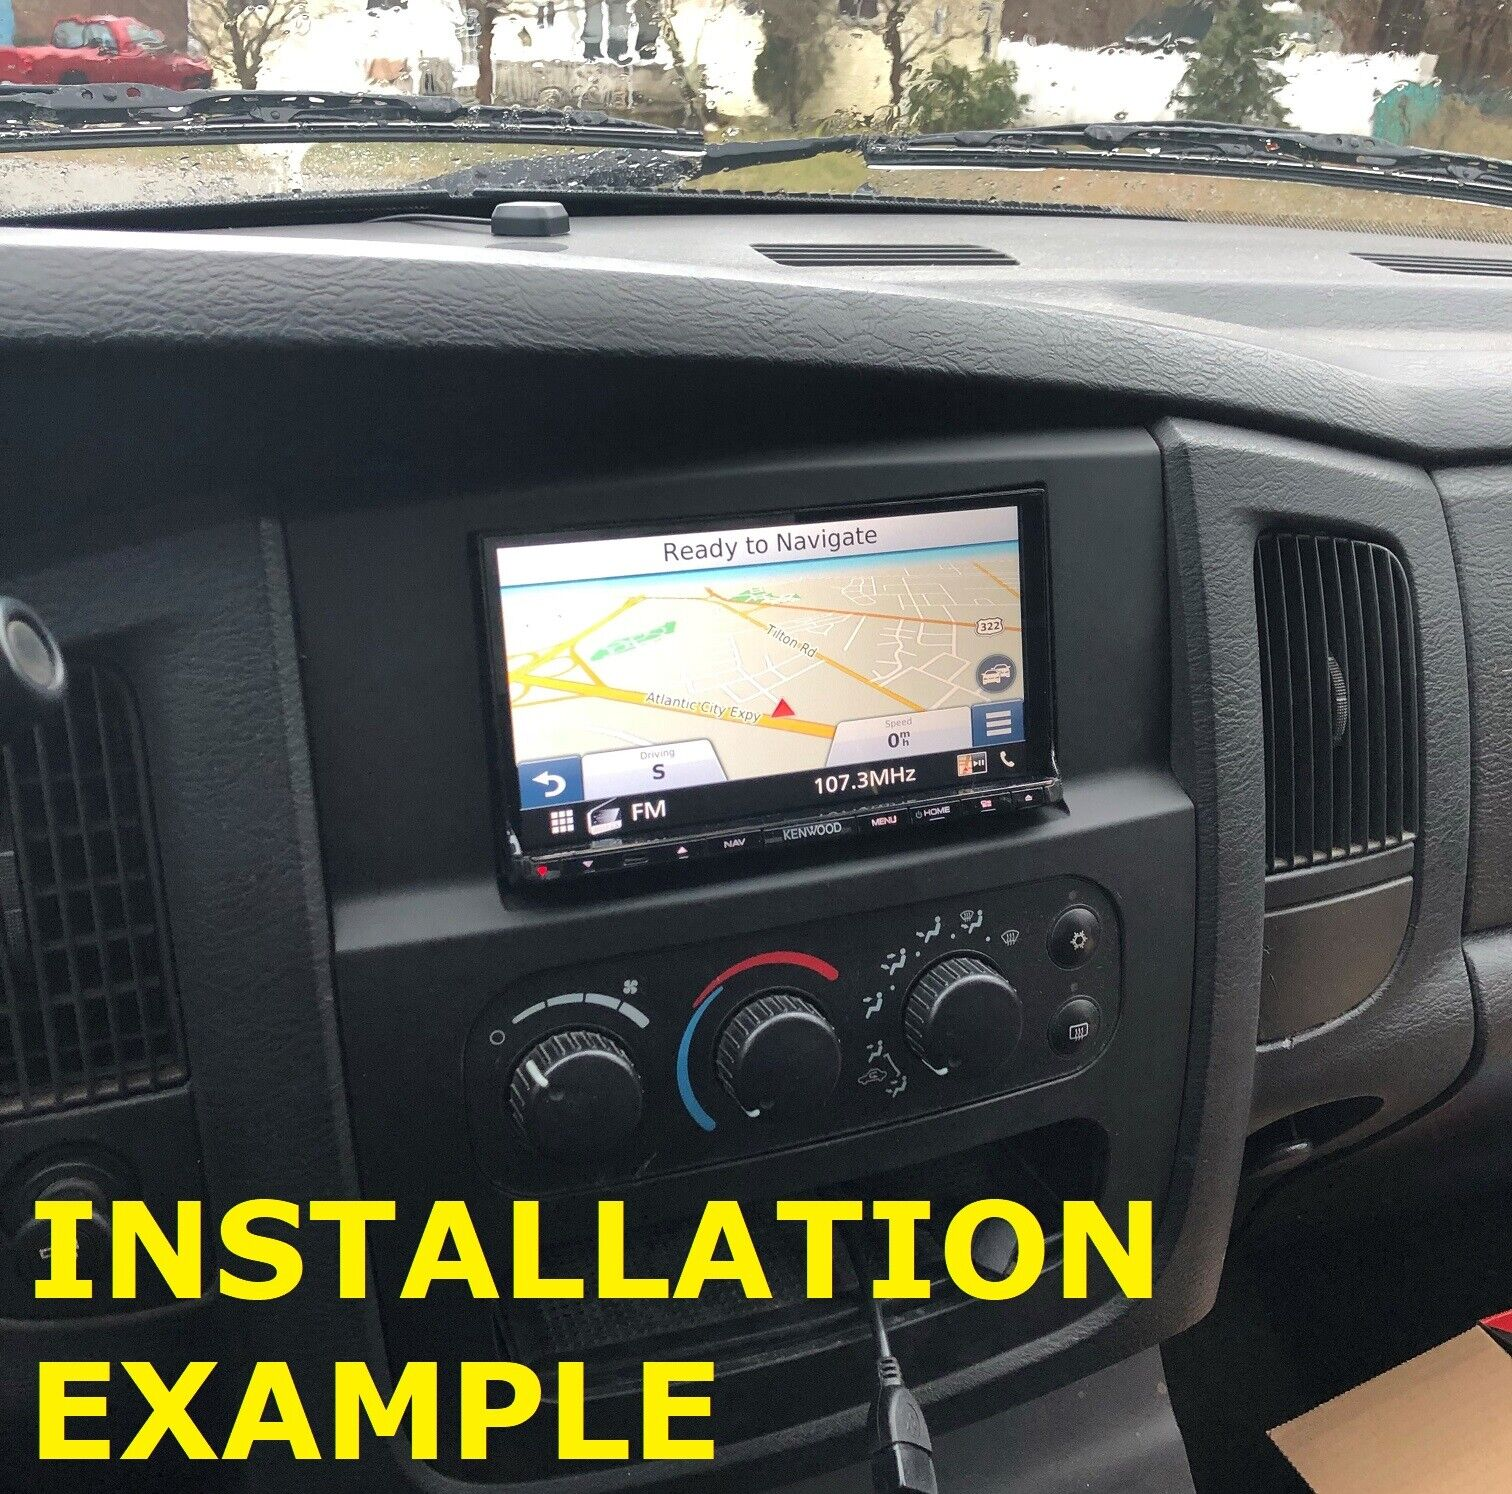 Hecasa Double Din Radio Install Dash Kit Fits For 2002 2003 2004 2005 Dodge Ram 1500 2500 3500 W Wire Harness Antenna Adapter In Dash Mounting Kits Car Electronics